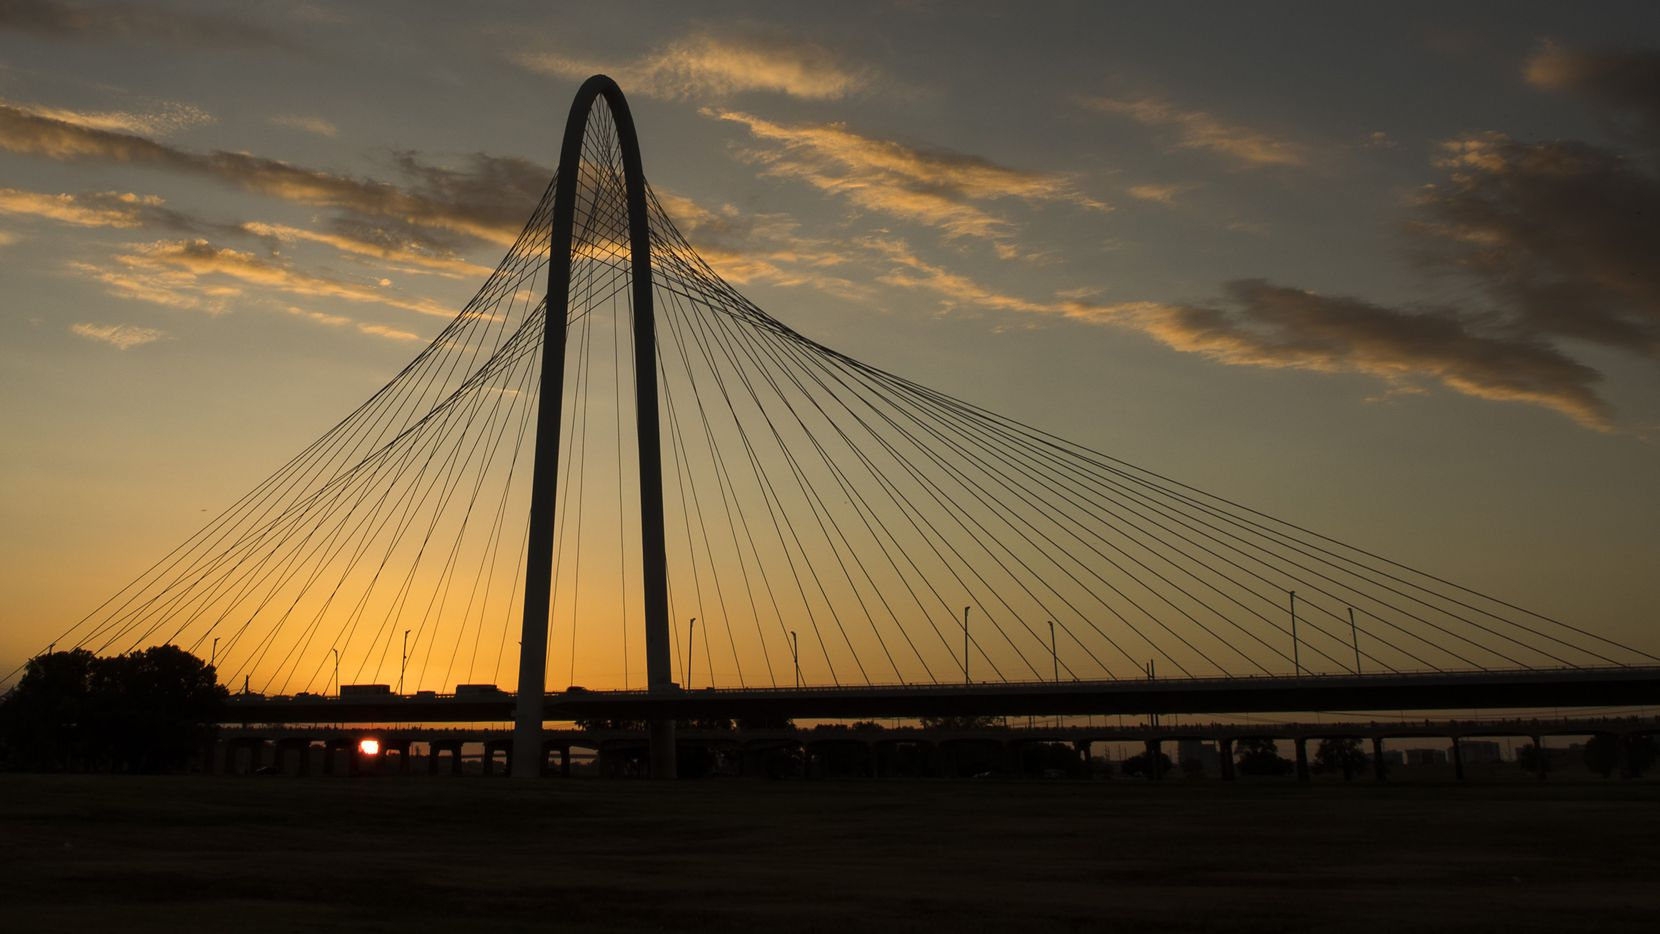 The sun sets behind the Margaret Hunt Hill Bridge in Dallas.